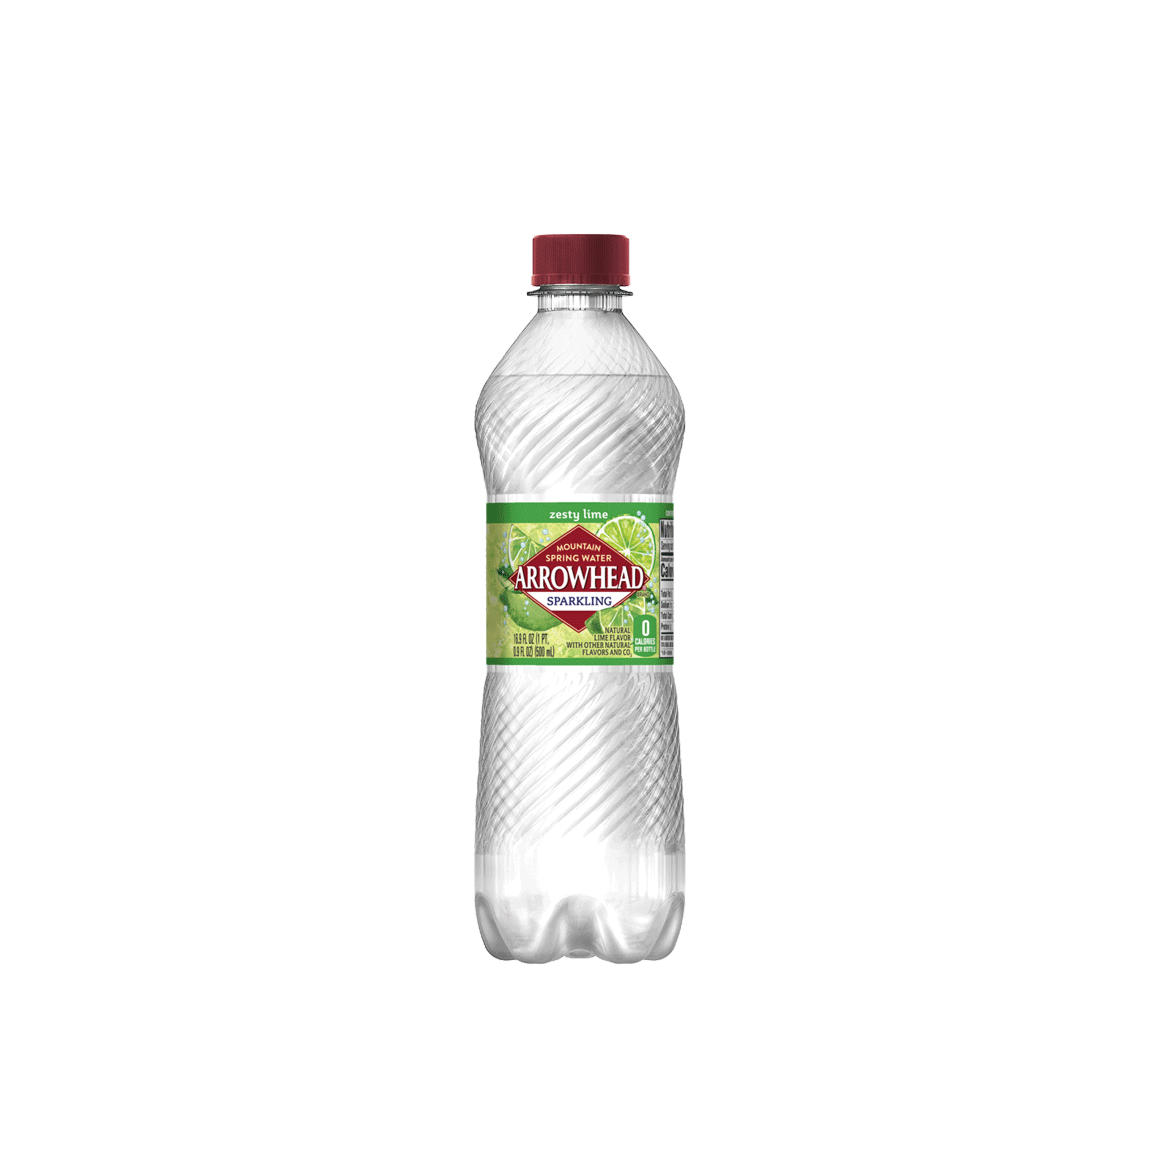 Arrowhead® Brand Sparkling 100% Mountain Spring Water - Rainbow Flavored Variety Pack Image3